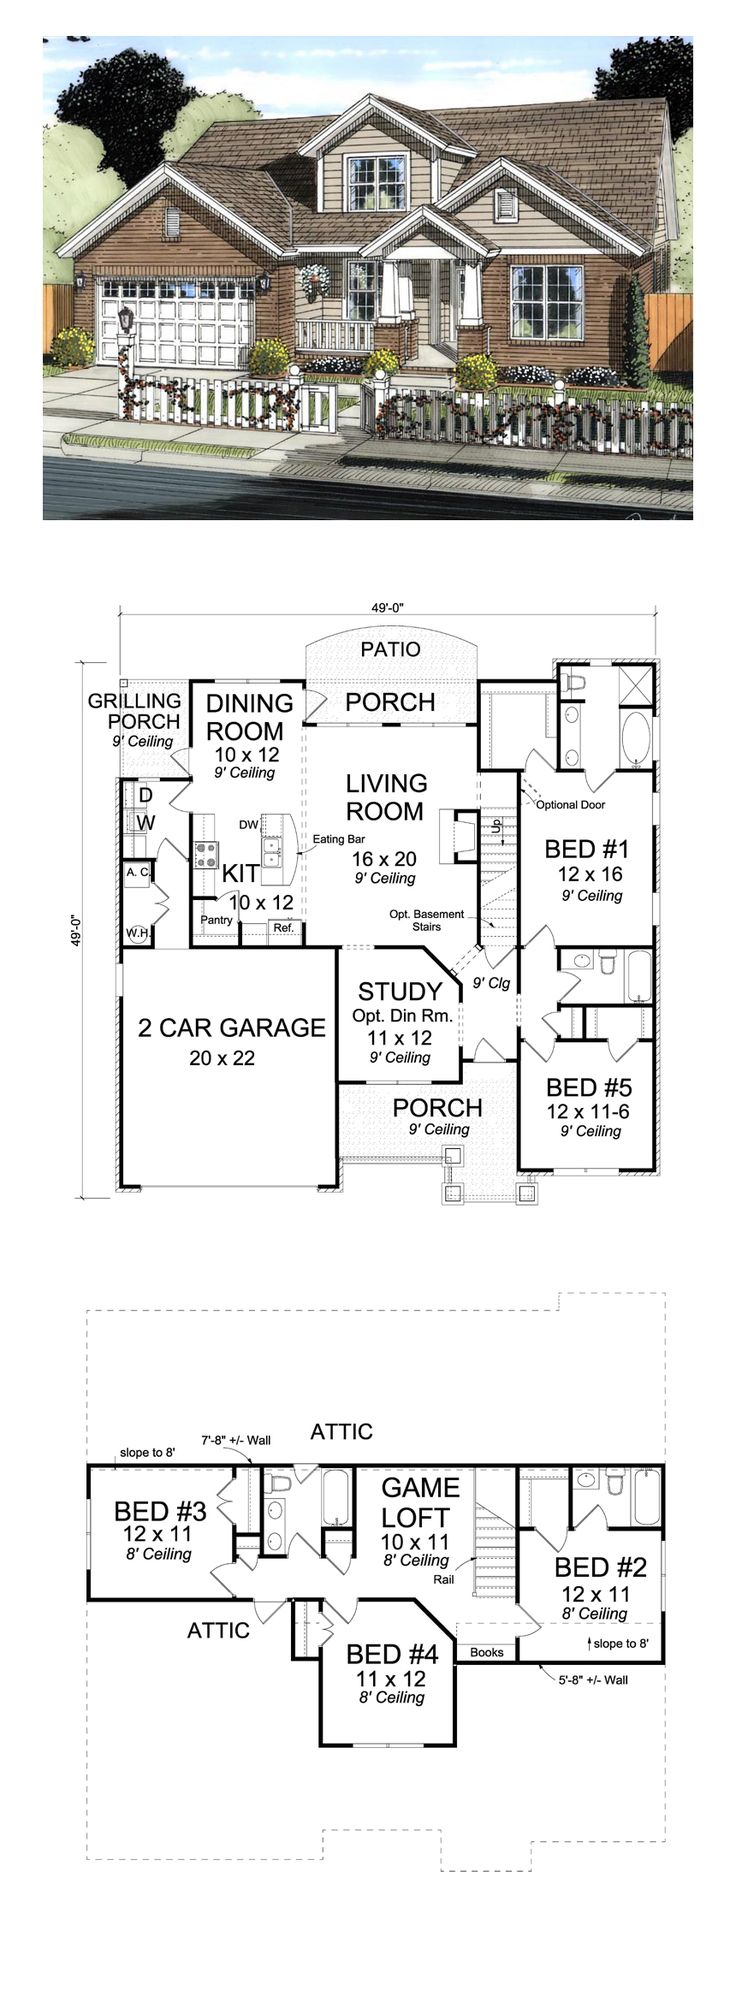 Blueprint Home Plans living room picture bedroom design